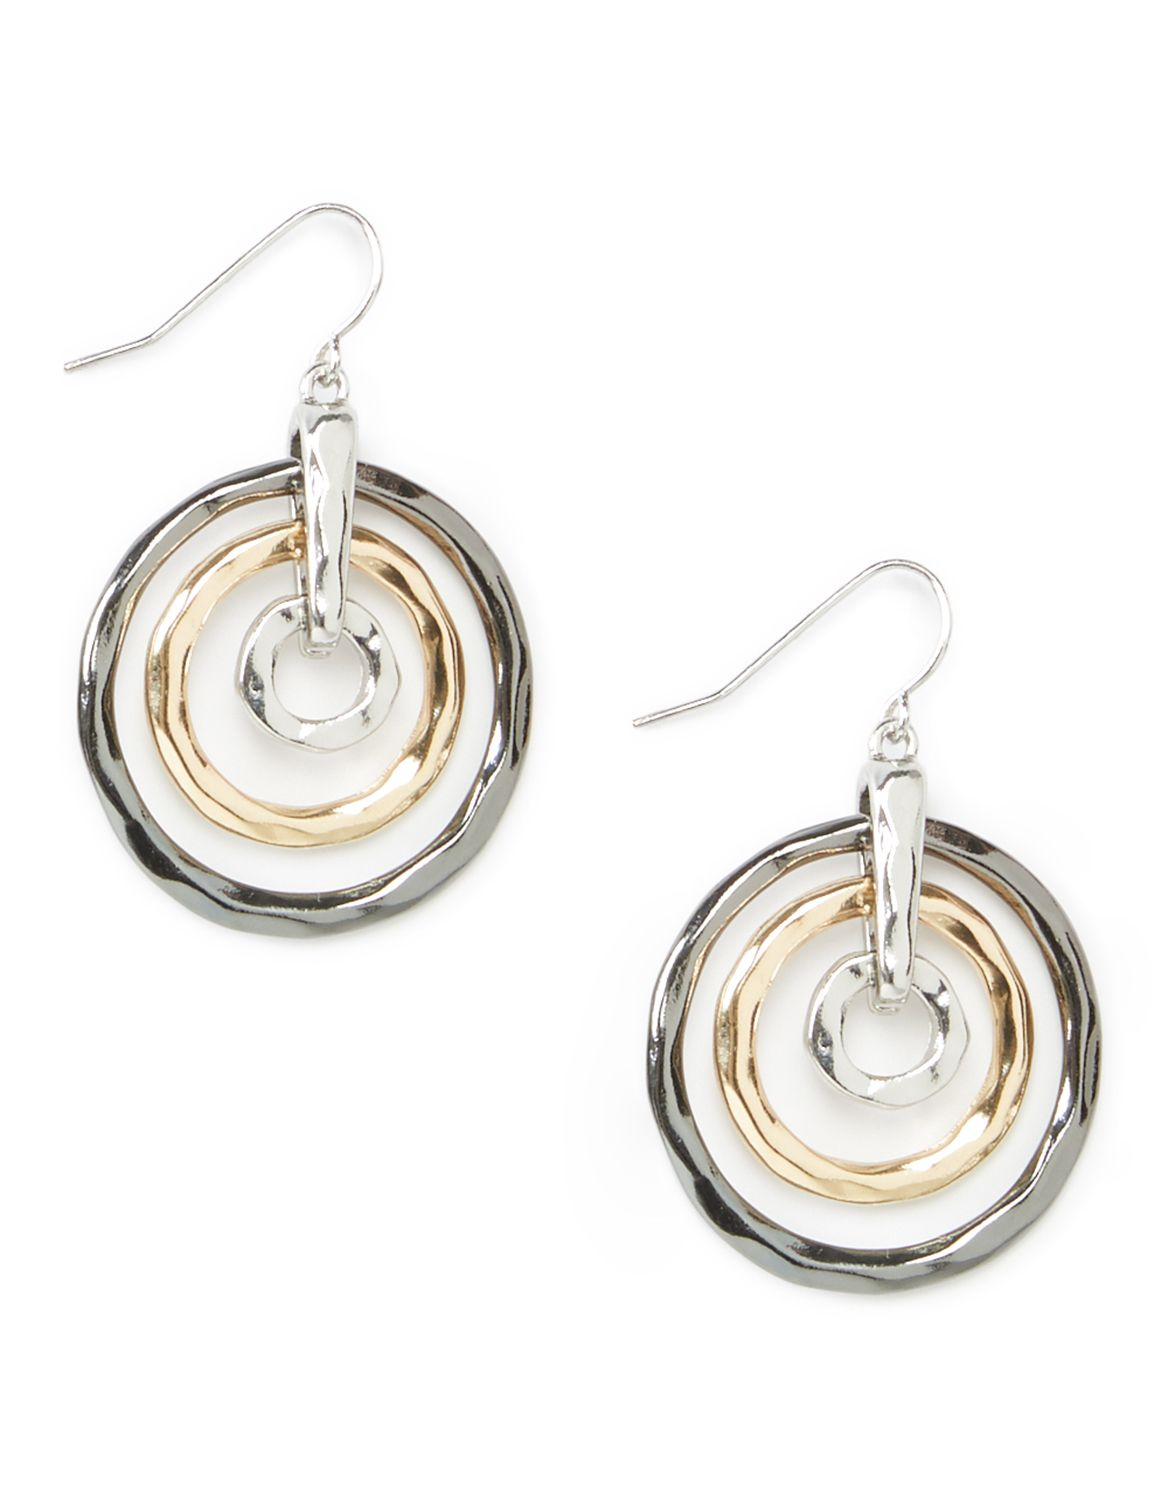 Circe Maze Earrings WU 3ring tritone PE KT0717E29 MP-300099411